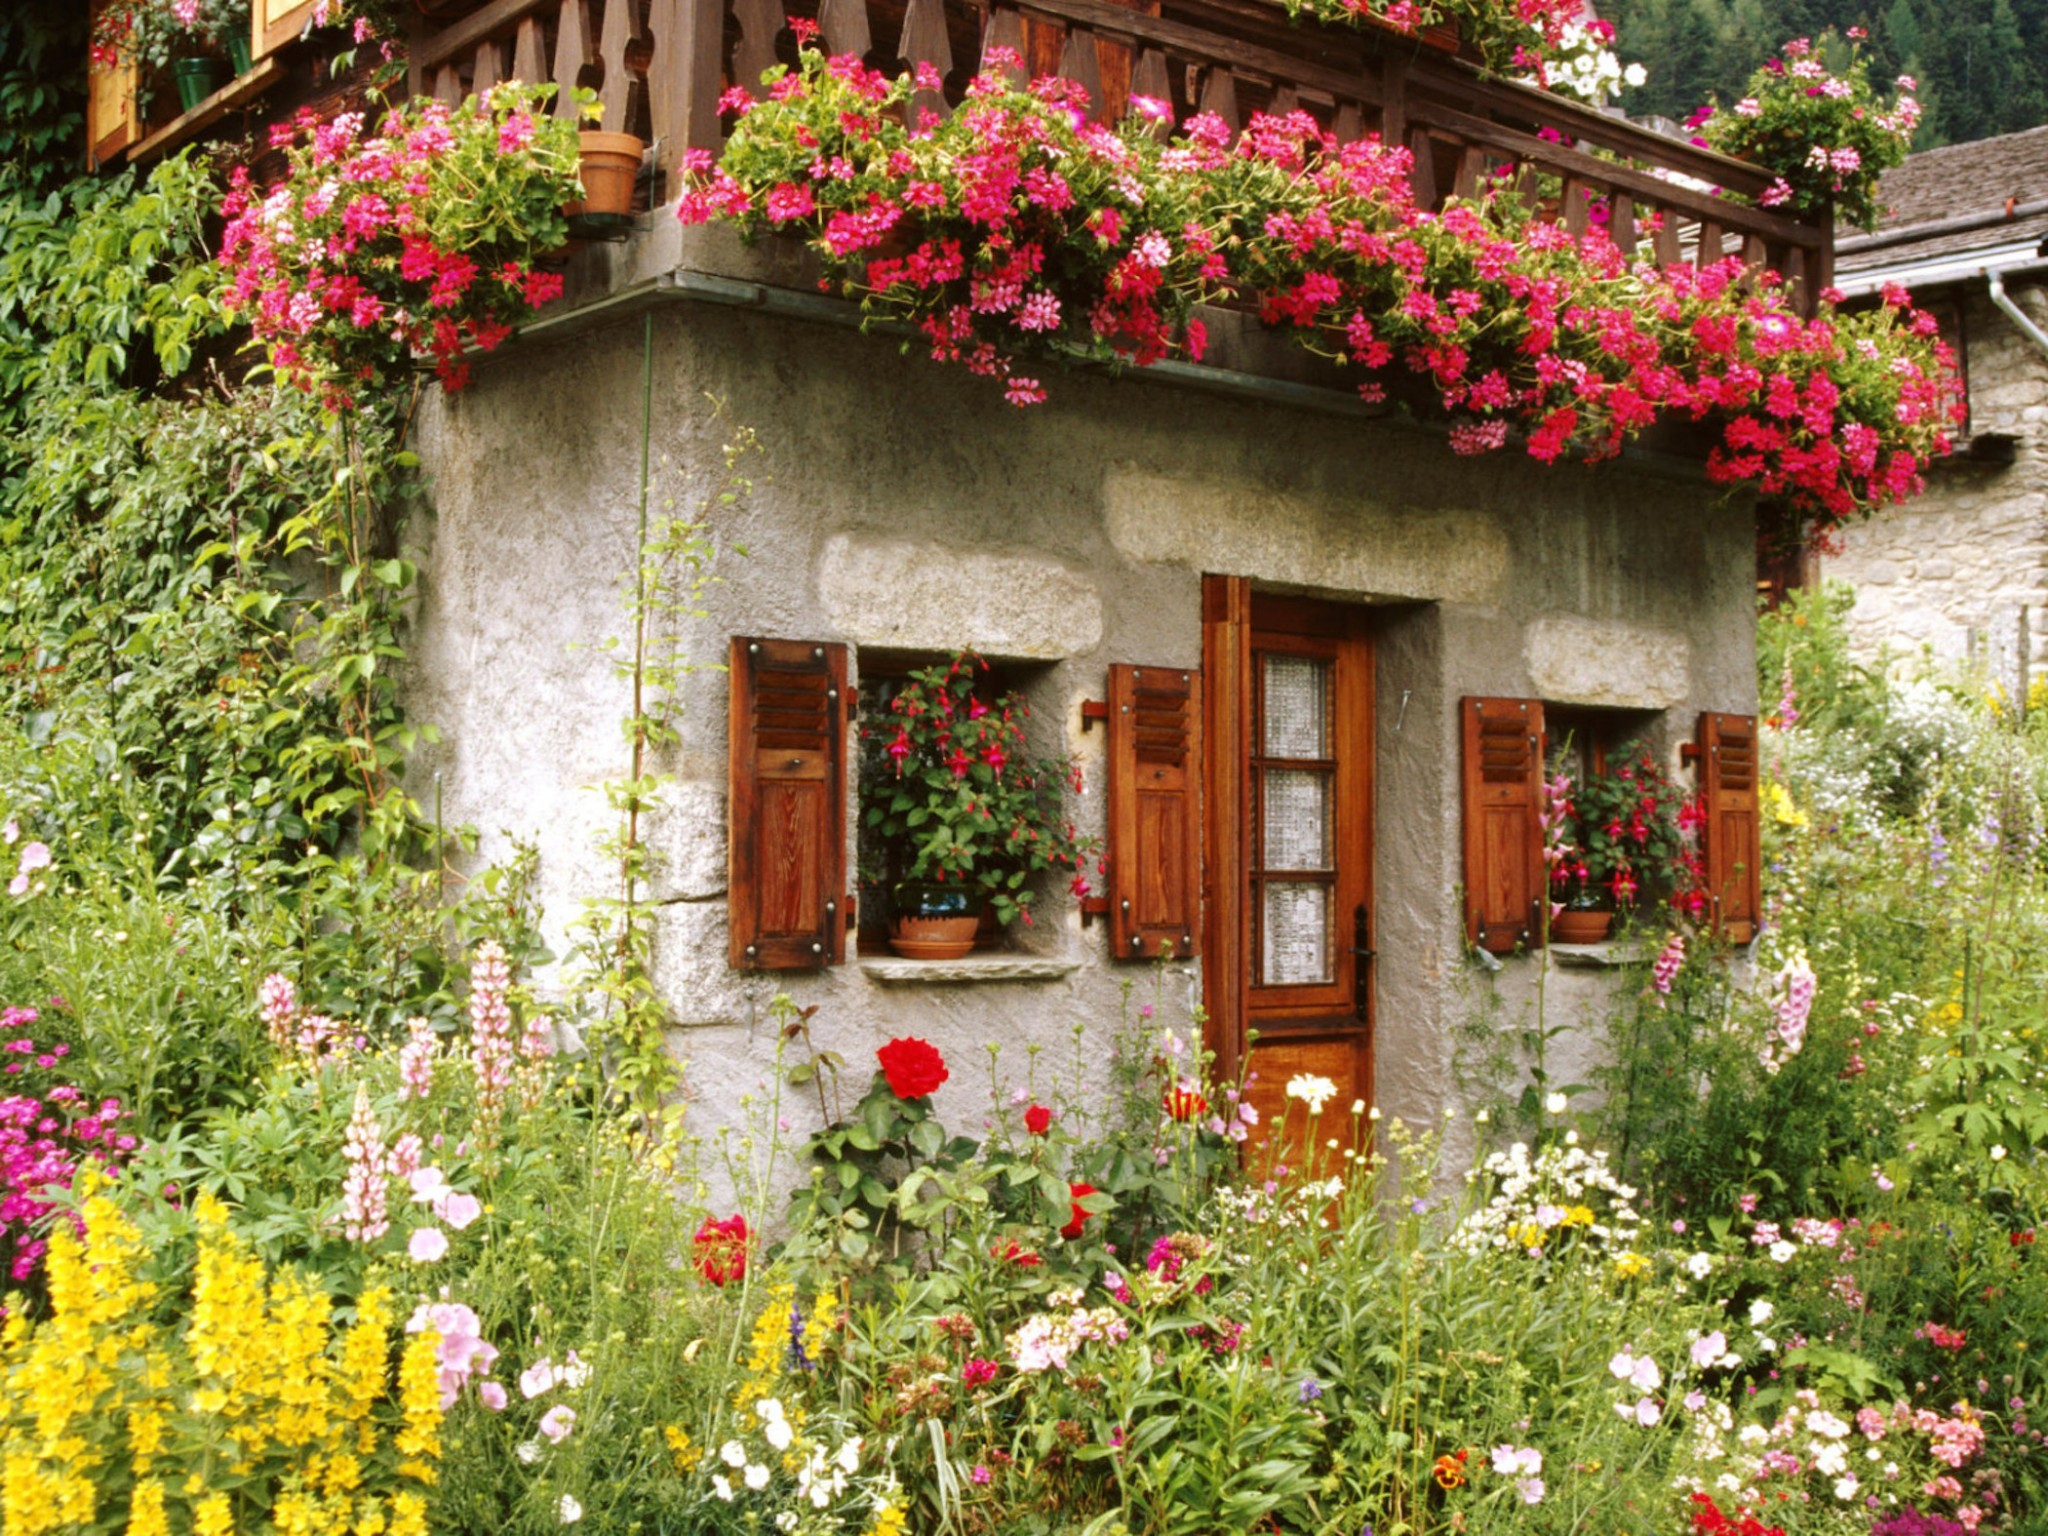 Lovely english cottage garden wallpaper free downloads for Beautiful garden images hd